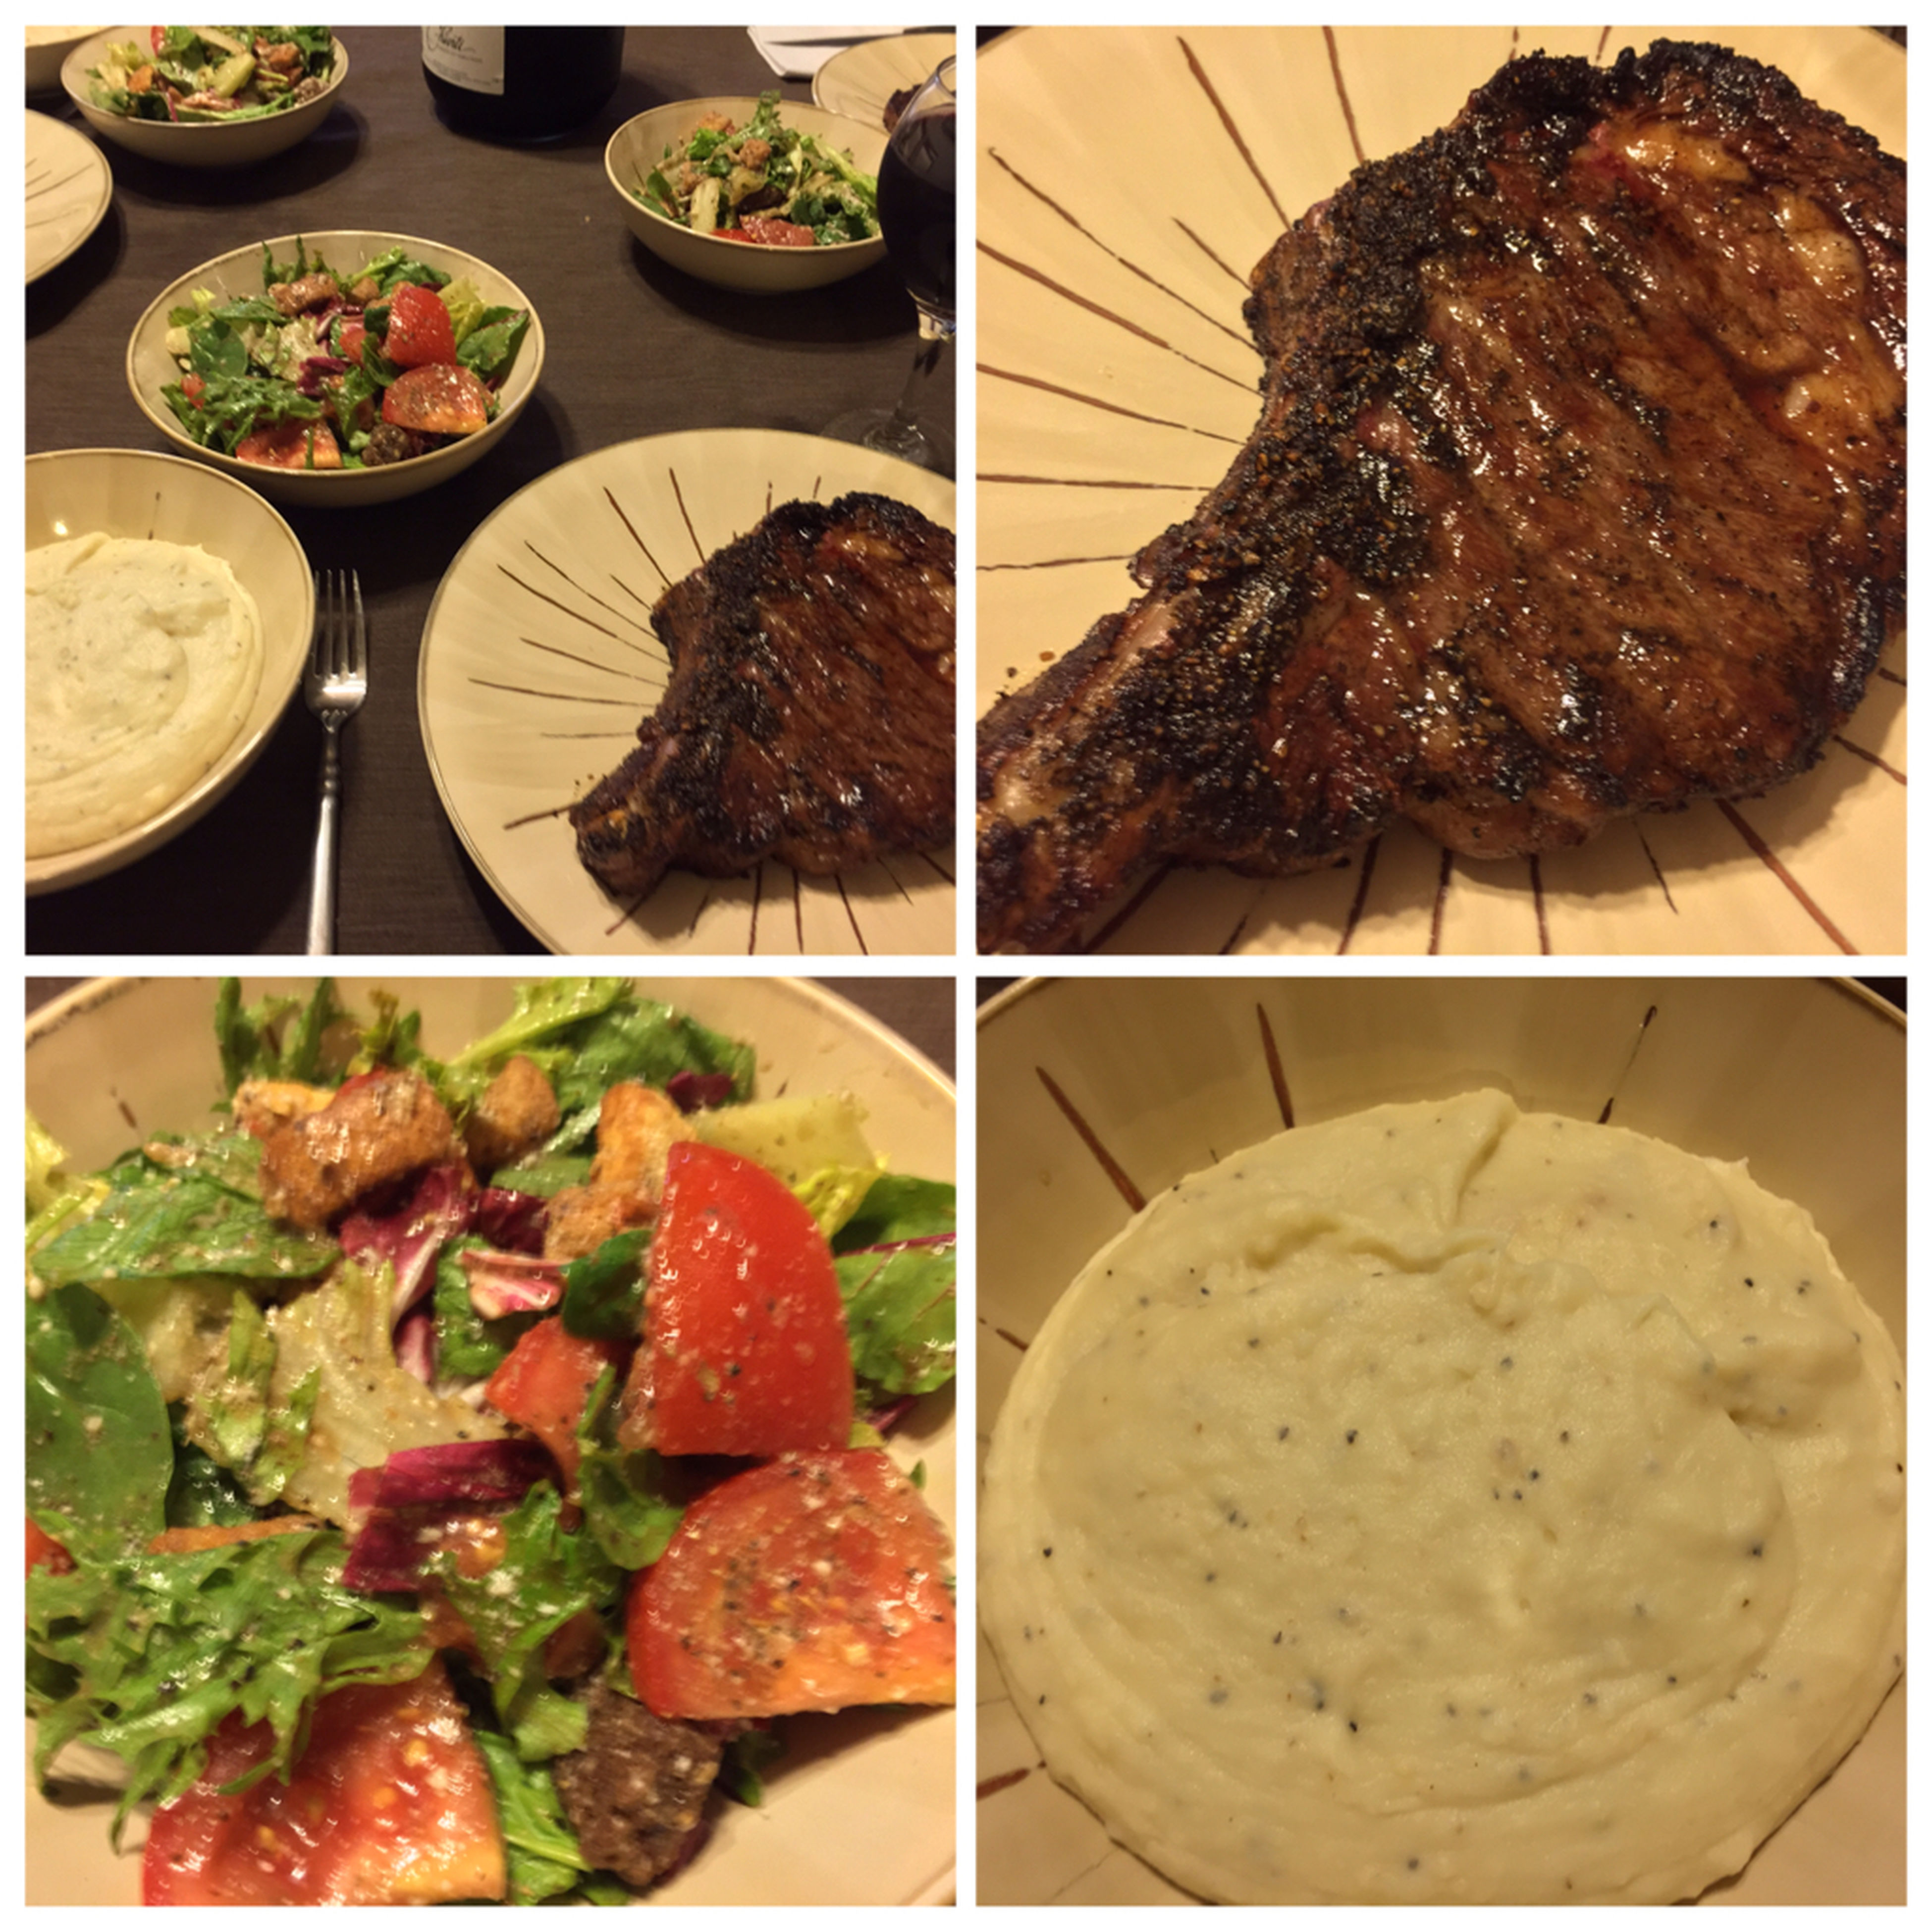 Tonight, I made ribeye steaks, mashed garlic potatoes and a nice salad. Served with my homemade 2013 Californian Merlot/Barbera blended wine. Grilling Steaks ICanCookMyAssOff ItsAnItalianThing Nomnombomb MyFoodPics LaDolceVita